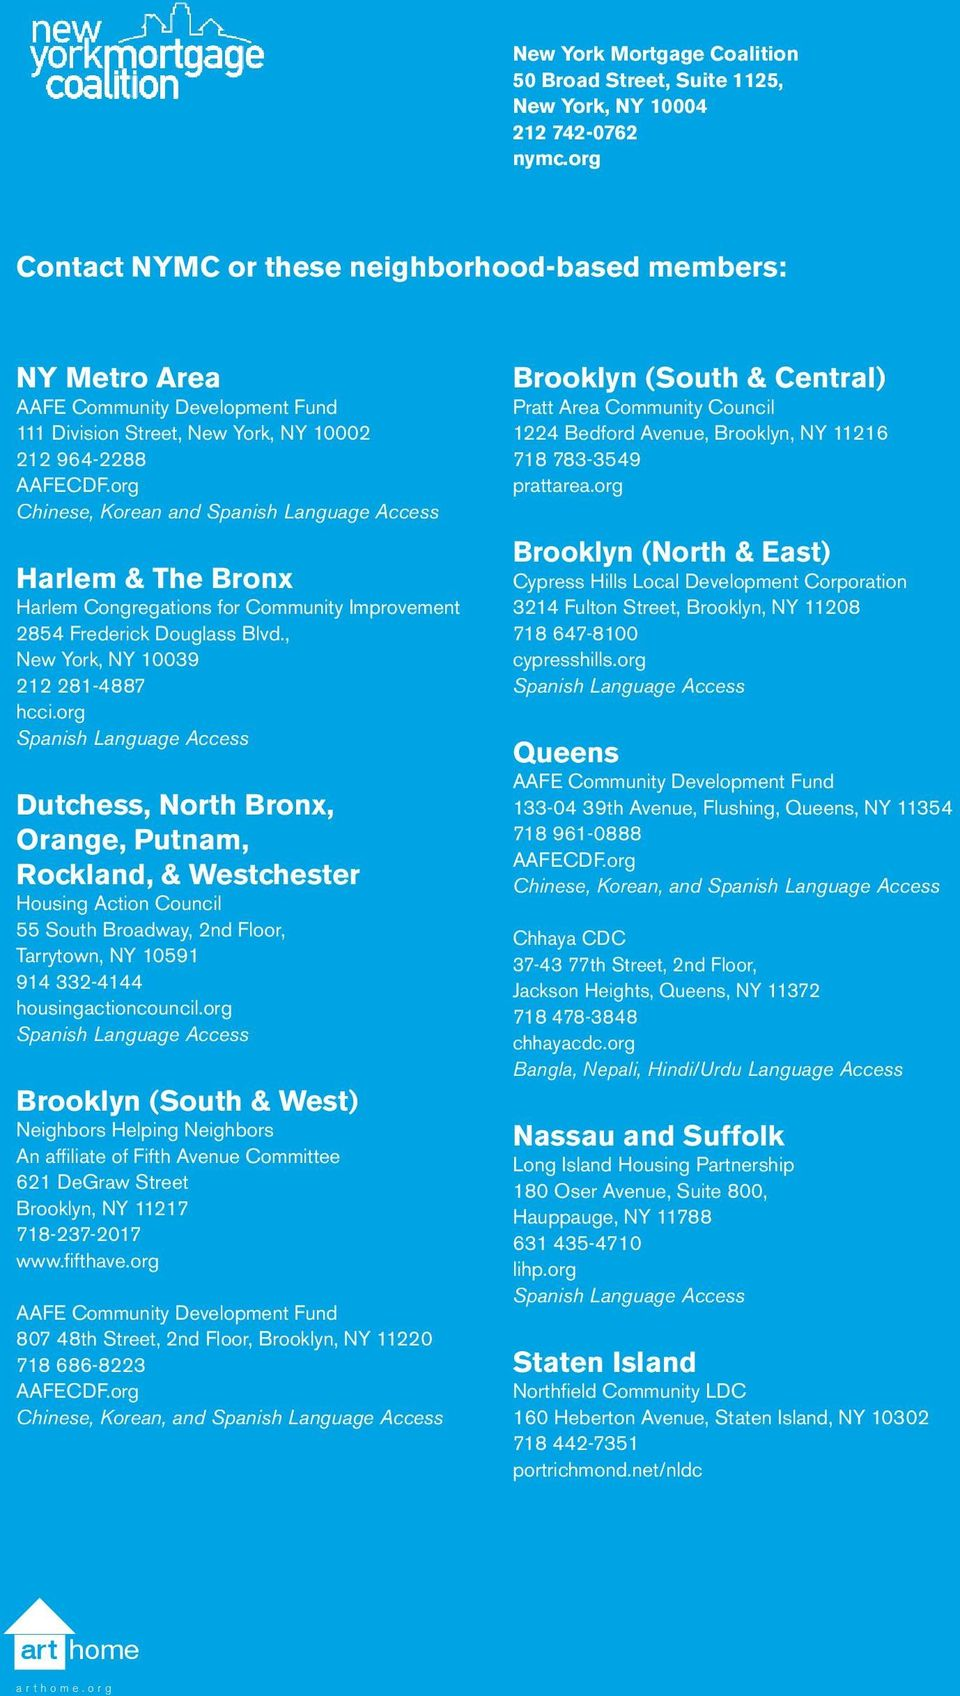 org Chinese, Korean and Spanish Language Access Harlem & The Bronx Harlem Congregations for Community Improvement 2854 Frederick Douglass Blvd., New York, NY 10039 212 281-4887 hcci.